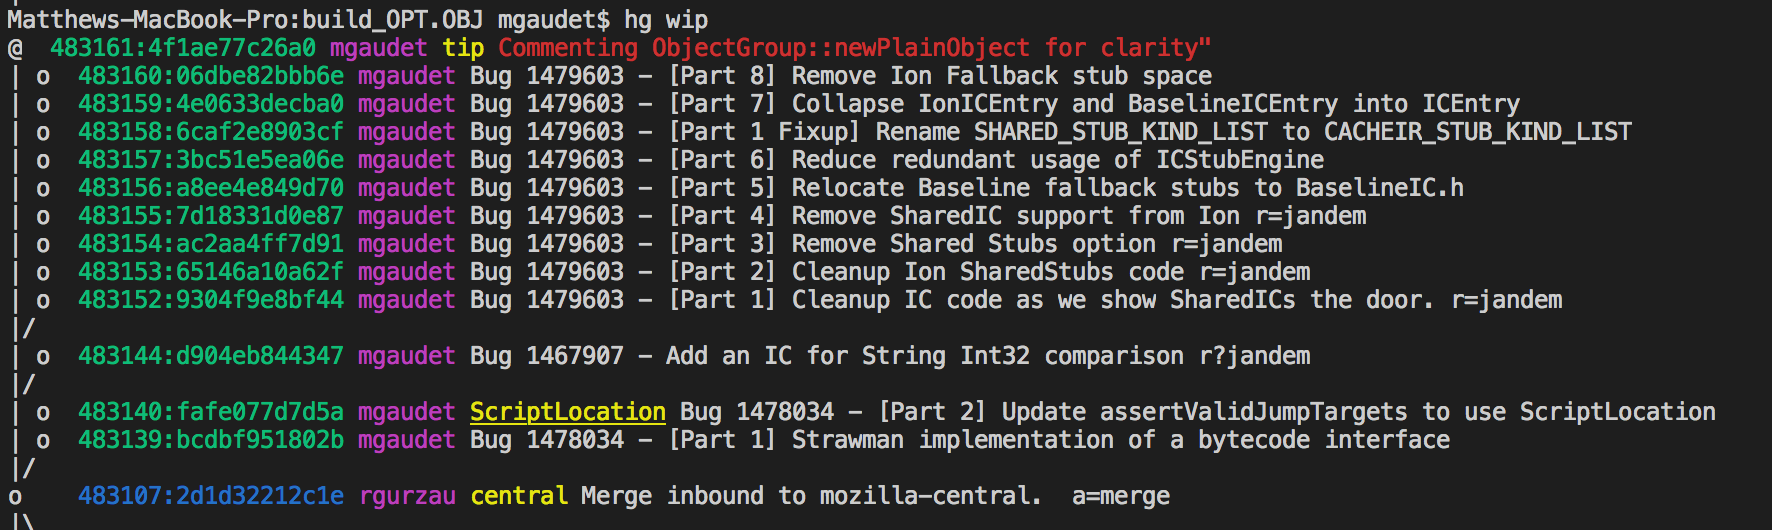 Green Hashes are draft revisions; blue are public. The red text highlights the current working directory parent, and yellow text are bookmark names.